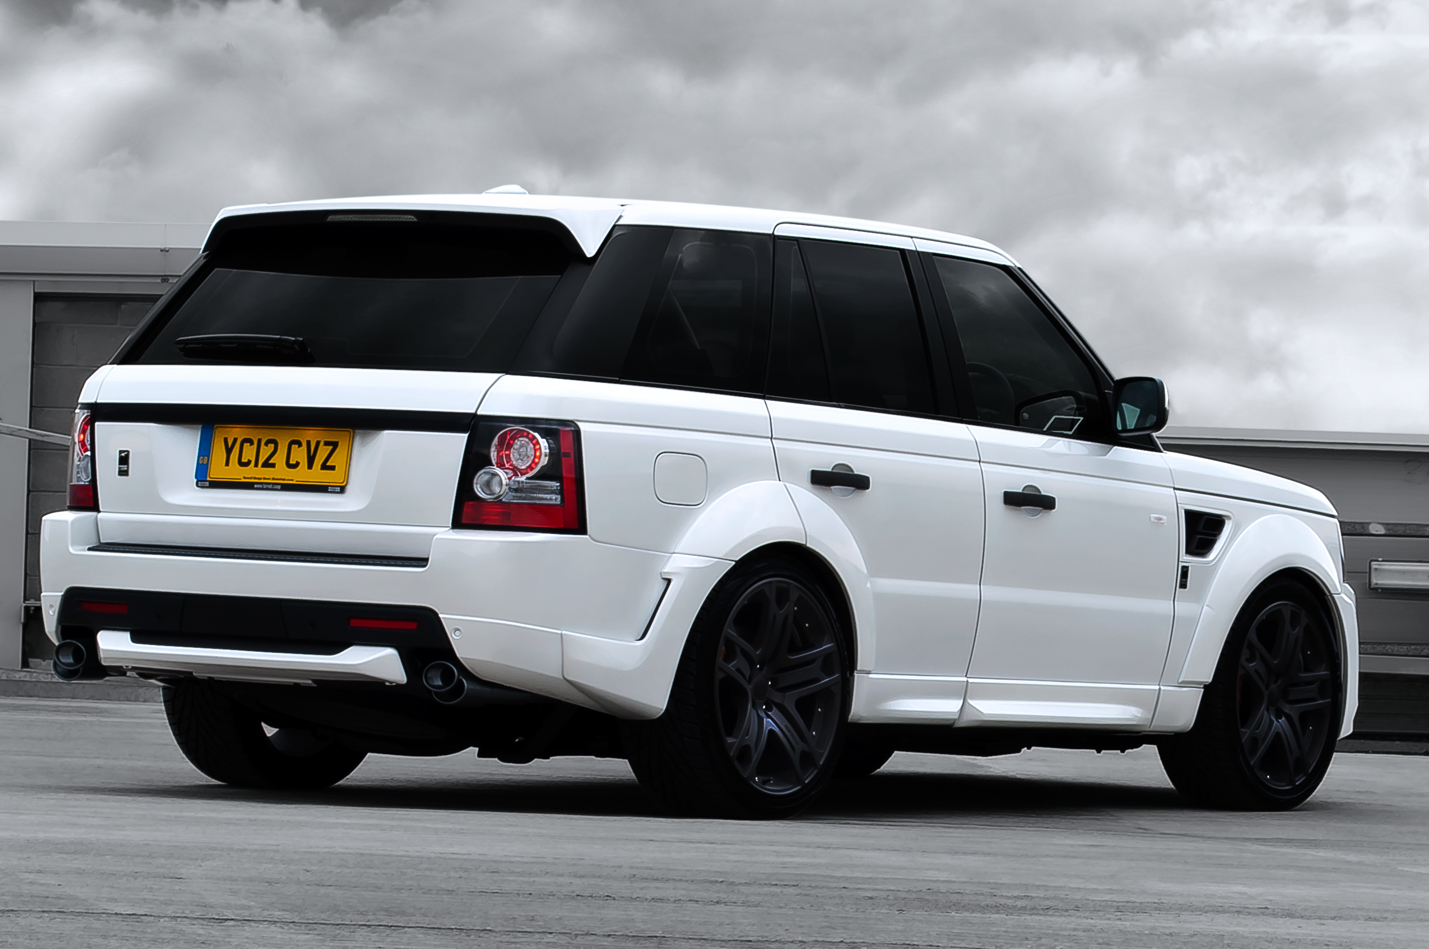 kahn le range rover sport 3 0 sdv6 rse autoevolution. Black Bedroom Furniture Sets. Home Design Ideas